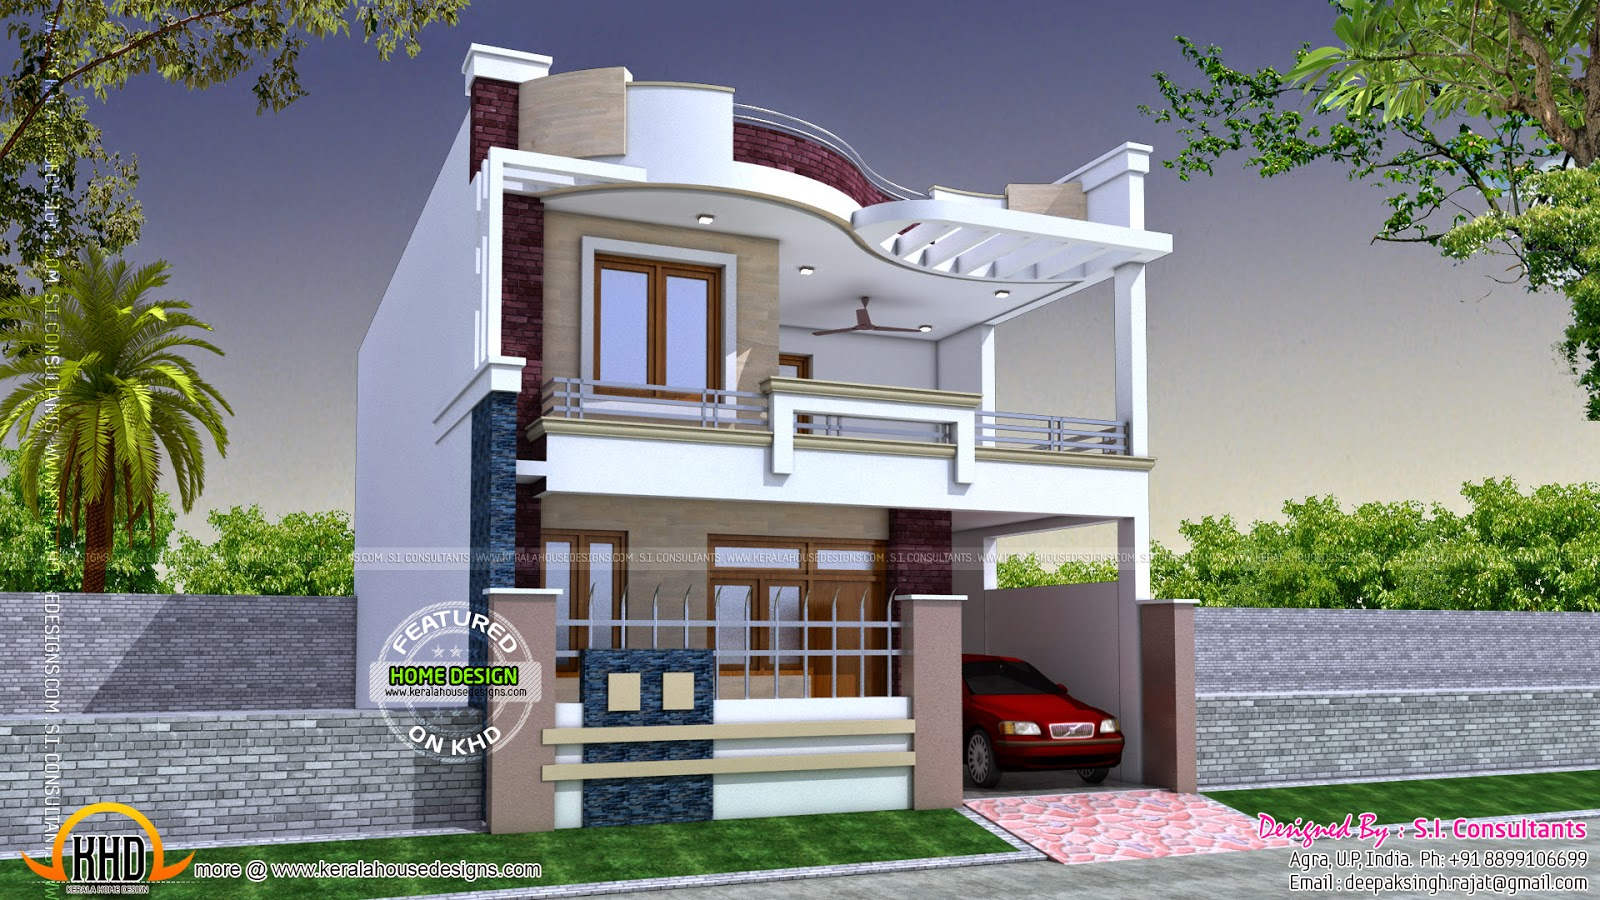 Modern indian home design kerala home design and floor plans for Small modern house plans two floors